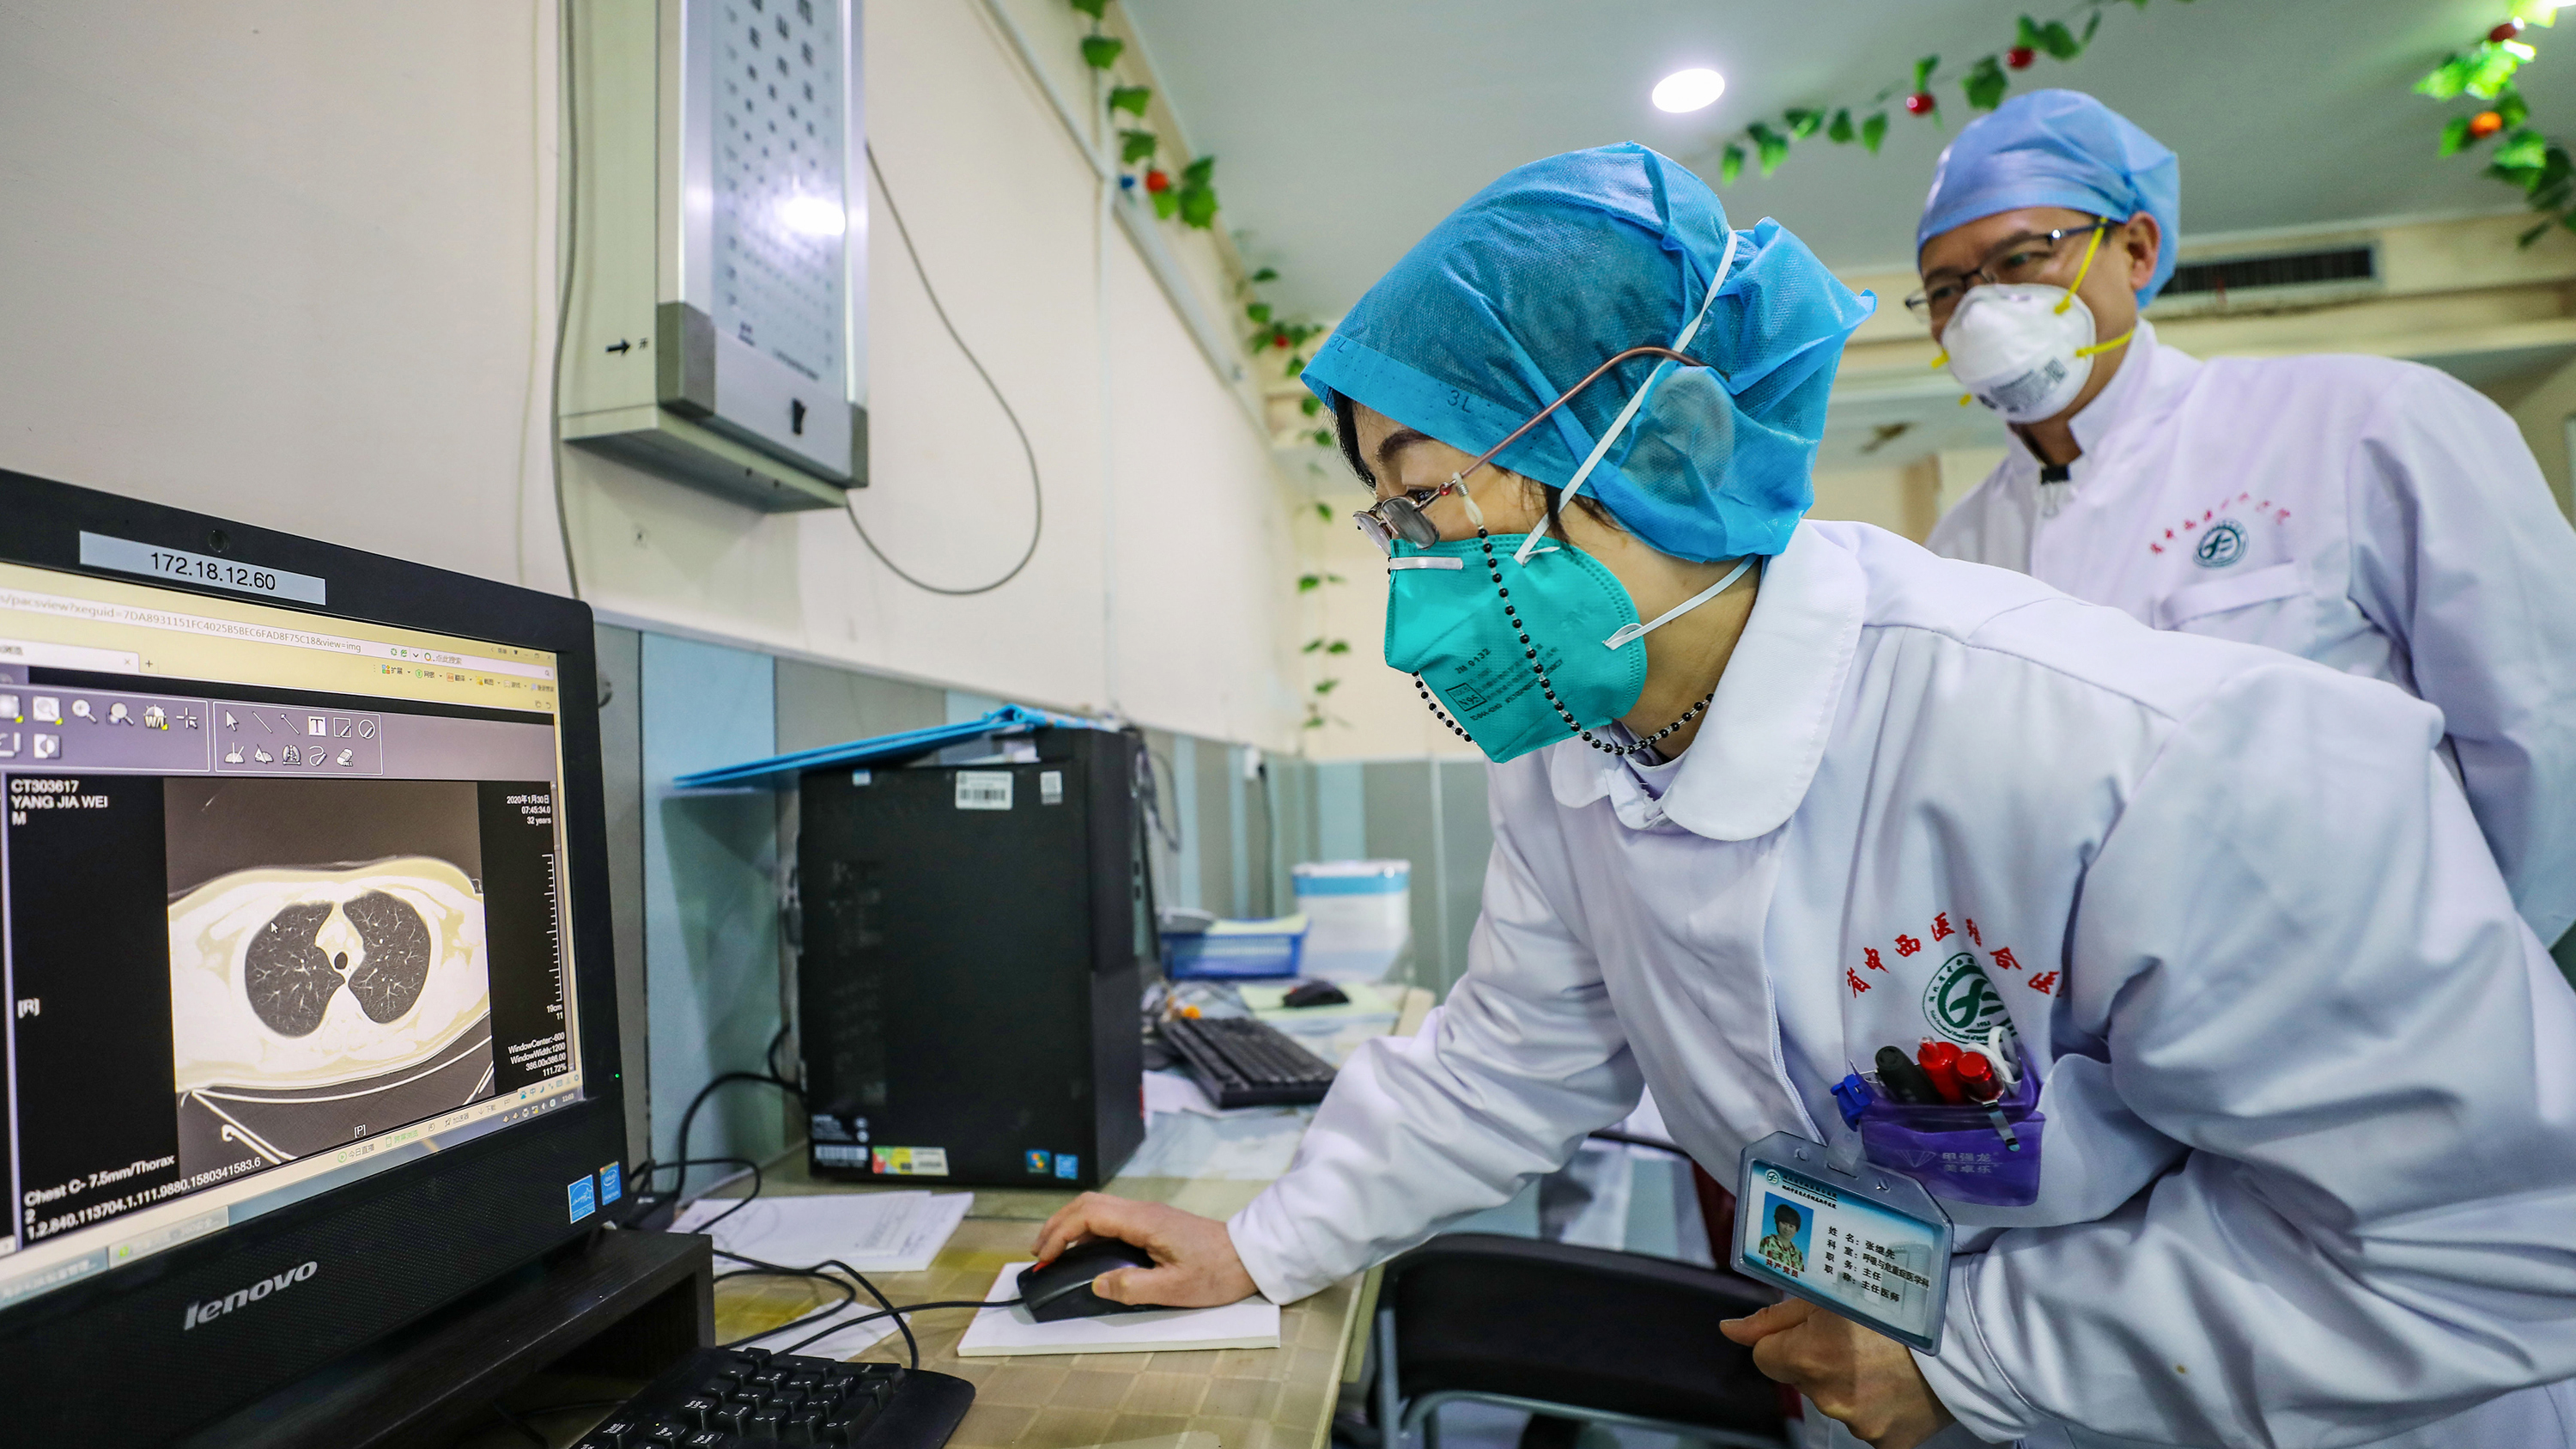 A doctor wearing a face mask looks at a CT image of a lung of a patient at a hospital in Wuhan, China.